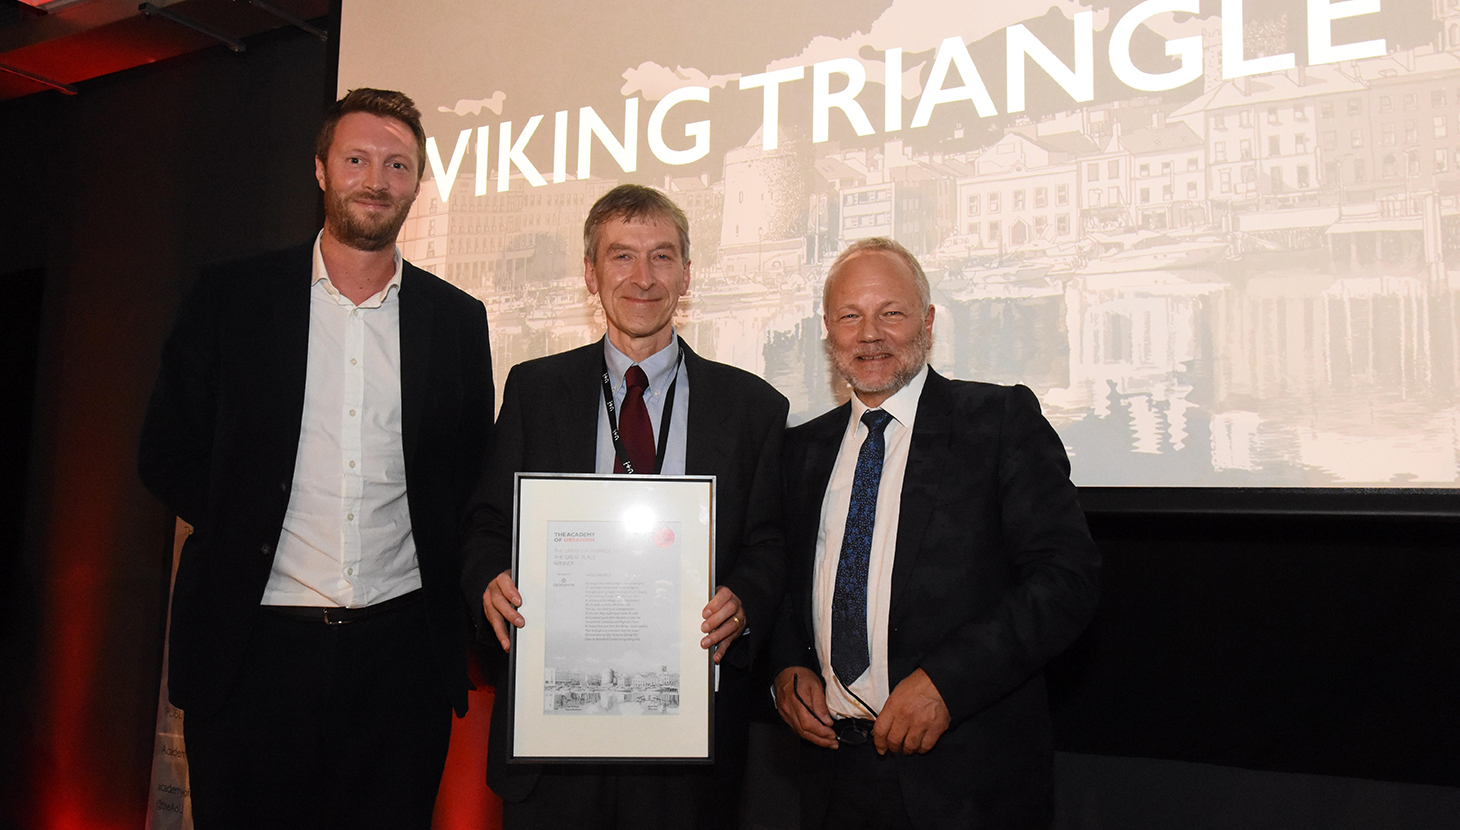 Rupert Maddock picks up Great Place award for Viking Triangle